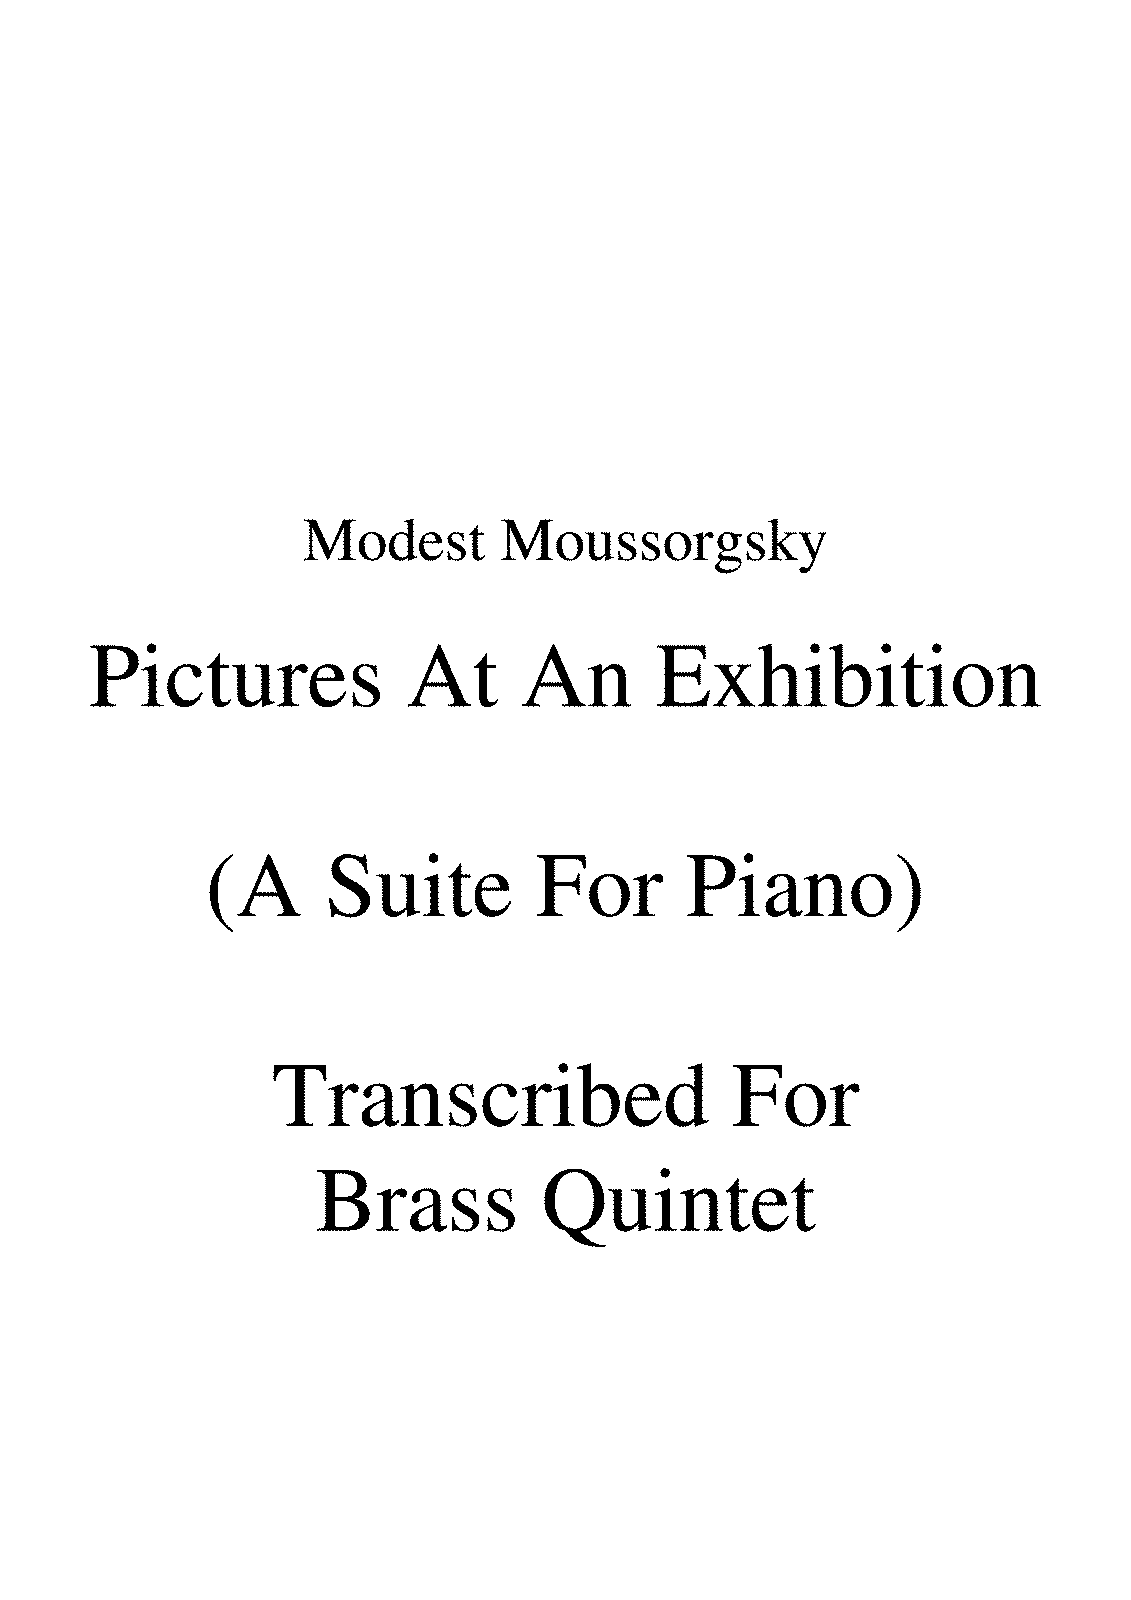 PMLP03722-Pictures at an Exhibition Brass Quintet Score.pdf